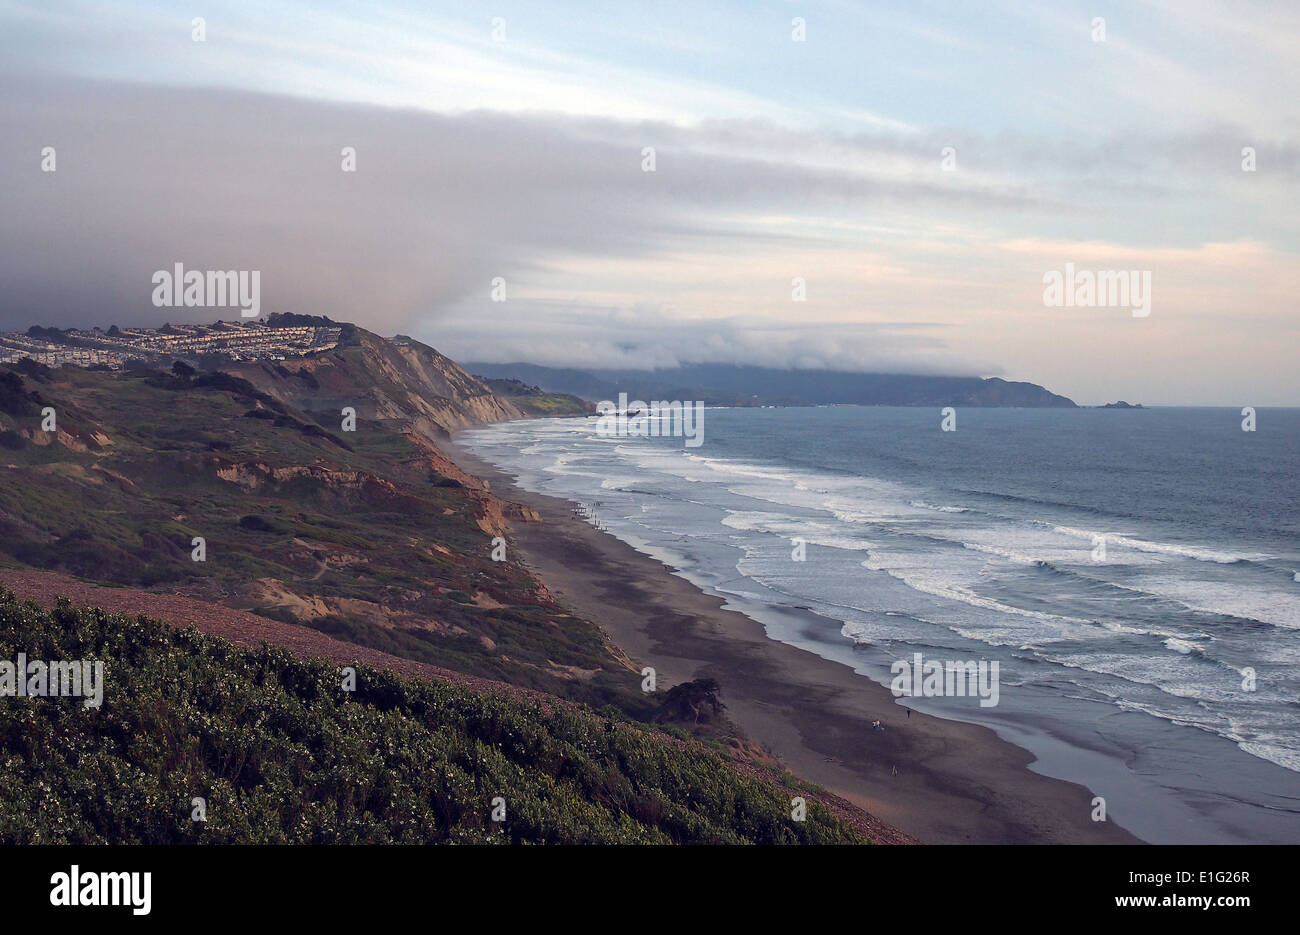 view of houses in Daly city from Fort Funston, GGNRA, San Francis - Stock Image